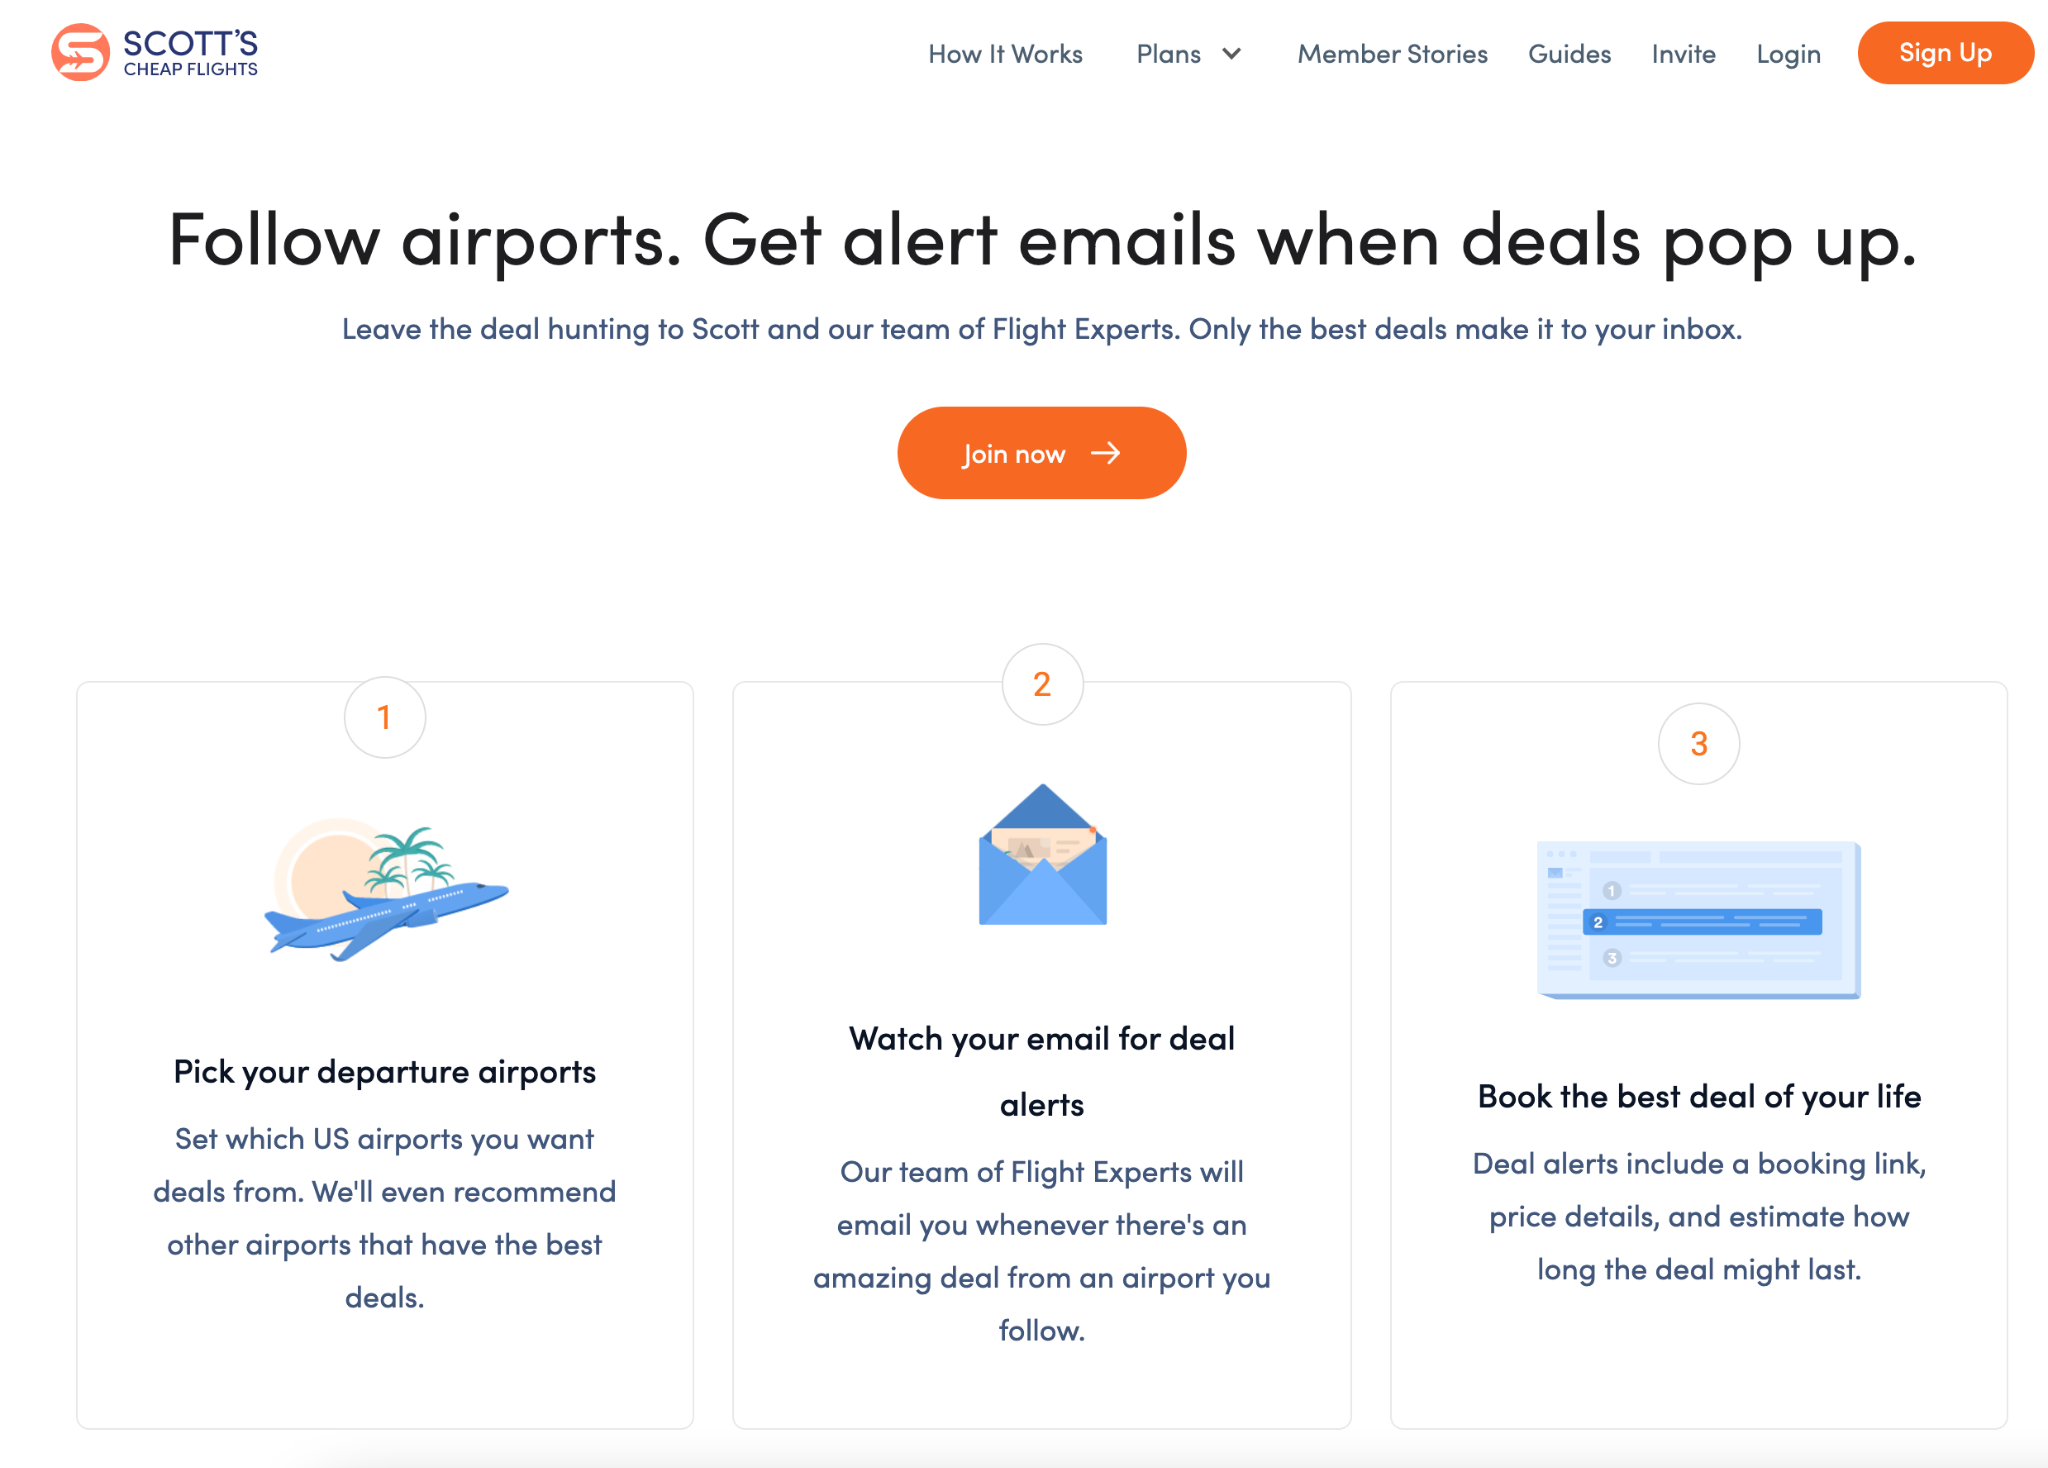 Scott's Cheap Flight's How It Works screen presents three steps: 1 Pick your departure airports, 2 Watch your email for deal alerts, 3 Book the best deal of your life. Each step includes a brief description if the user wants to know more, but the user does not have to read the descriptions to understand the process.